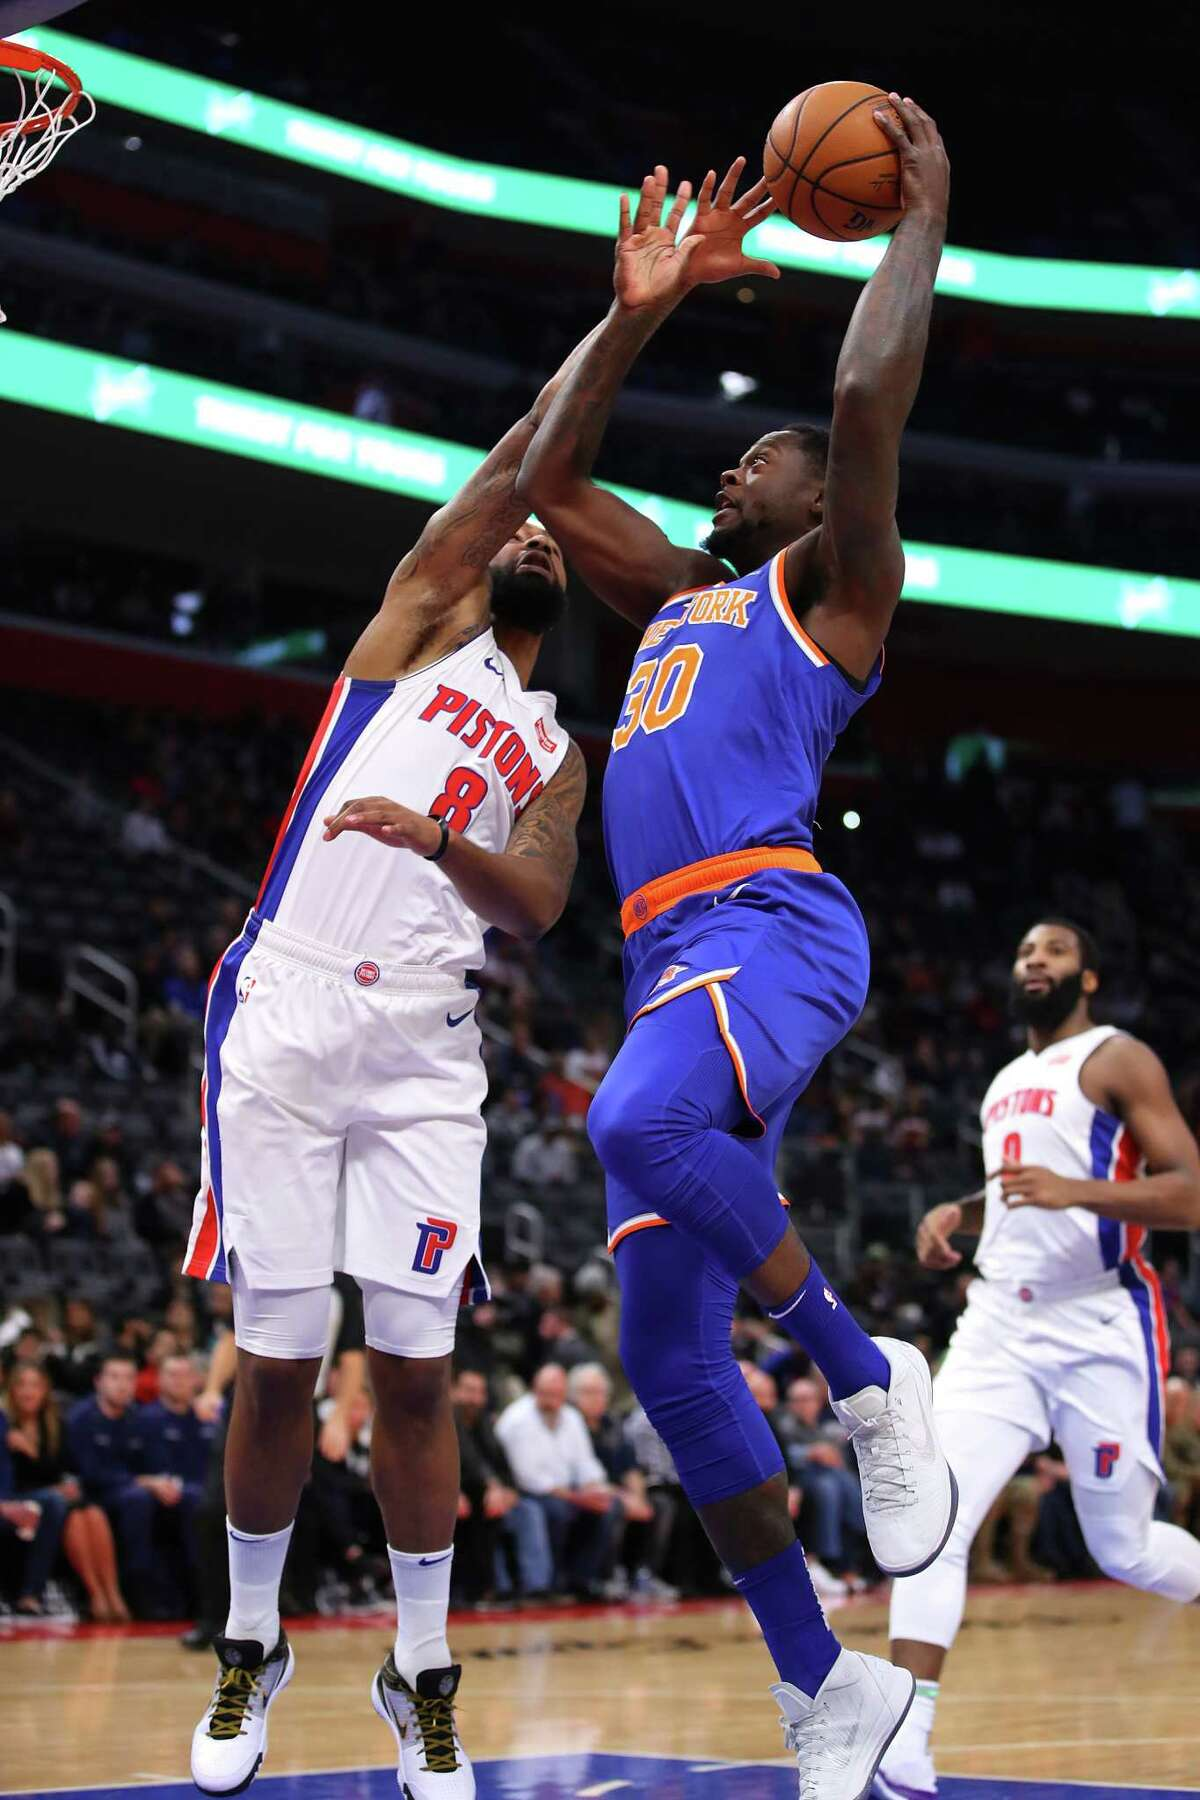 DETROIT, MICHIGAN - NOVEMBER 06: Julius Randle #30 of the New York Knicks tries to get a shot off over Markieff Morris #8 of the Detroit Pistons during the first half at Little Caesars Arena on November 06, 2019 in Detroit, Michigan. NOTE TO USER: User expressly acknowledges and agrees that, by downloading and/or using this photograph, user is consenting to the terms and conditions of the Getty Images License Agreement. (Photo by Gregory Shamus/Getty Images)